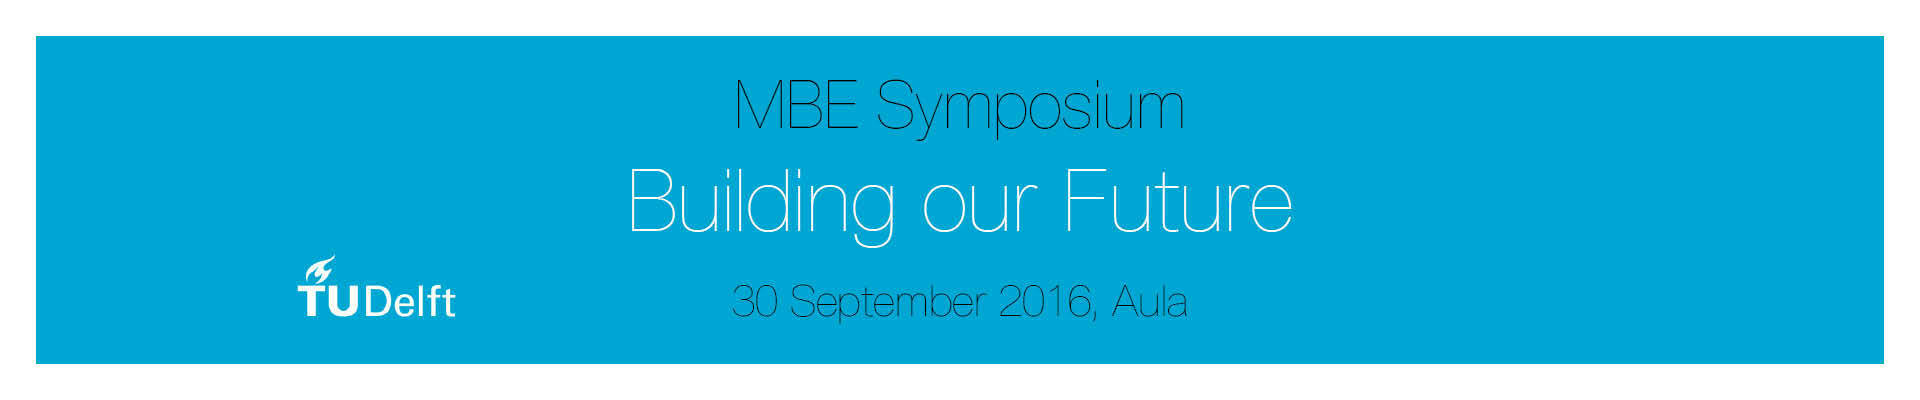 MBE Symposium 'Building our Future' 30 september 2016